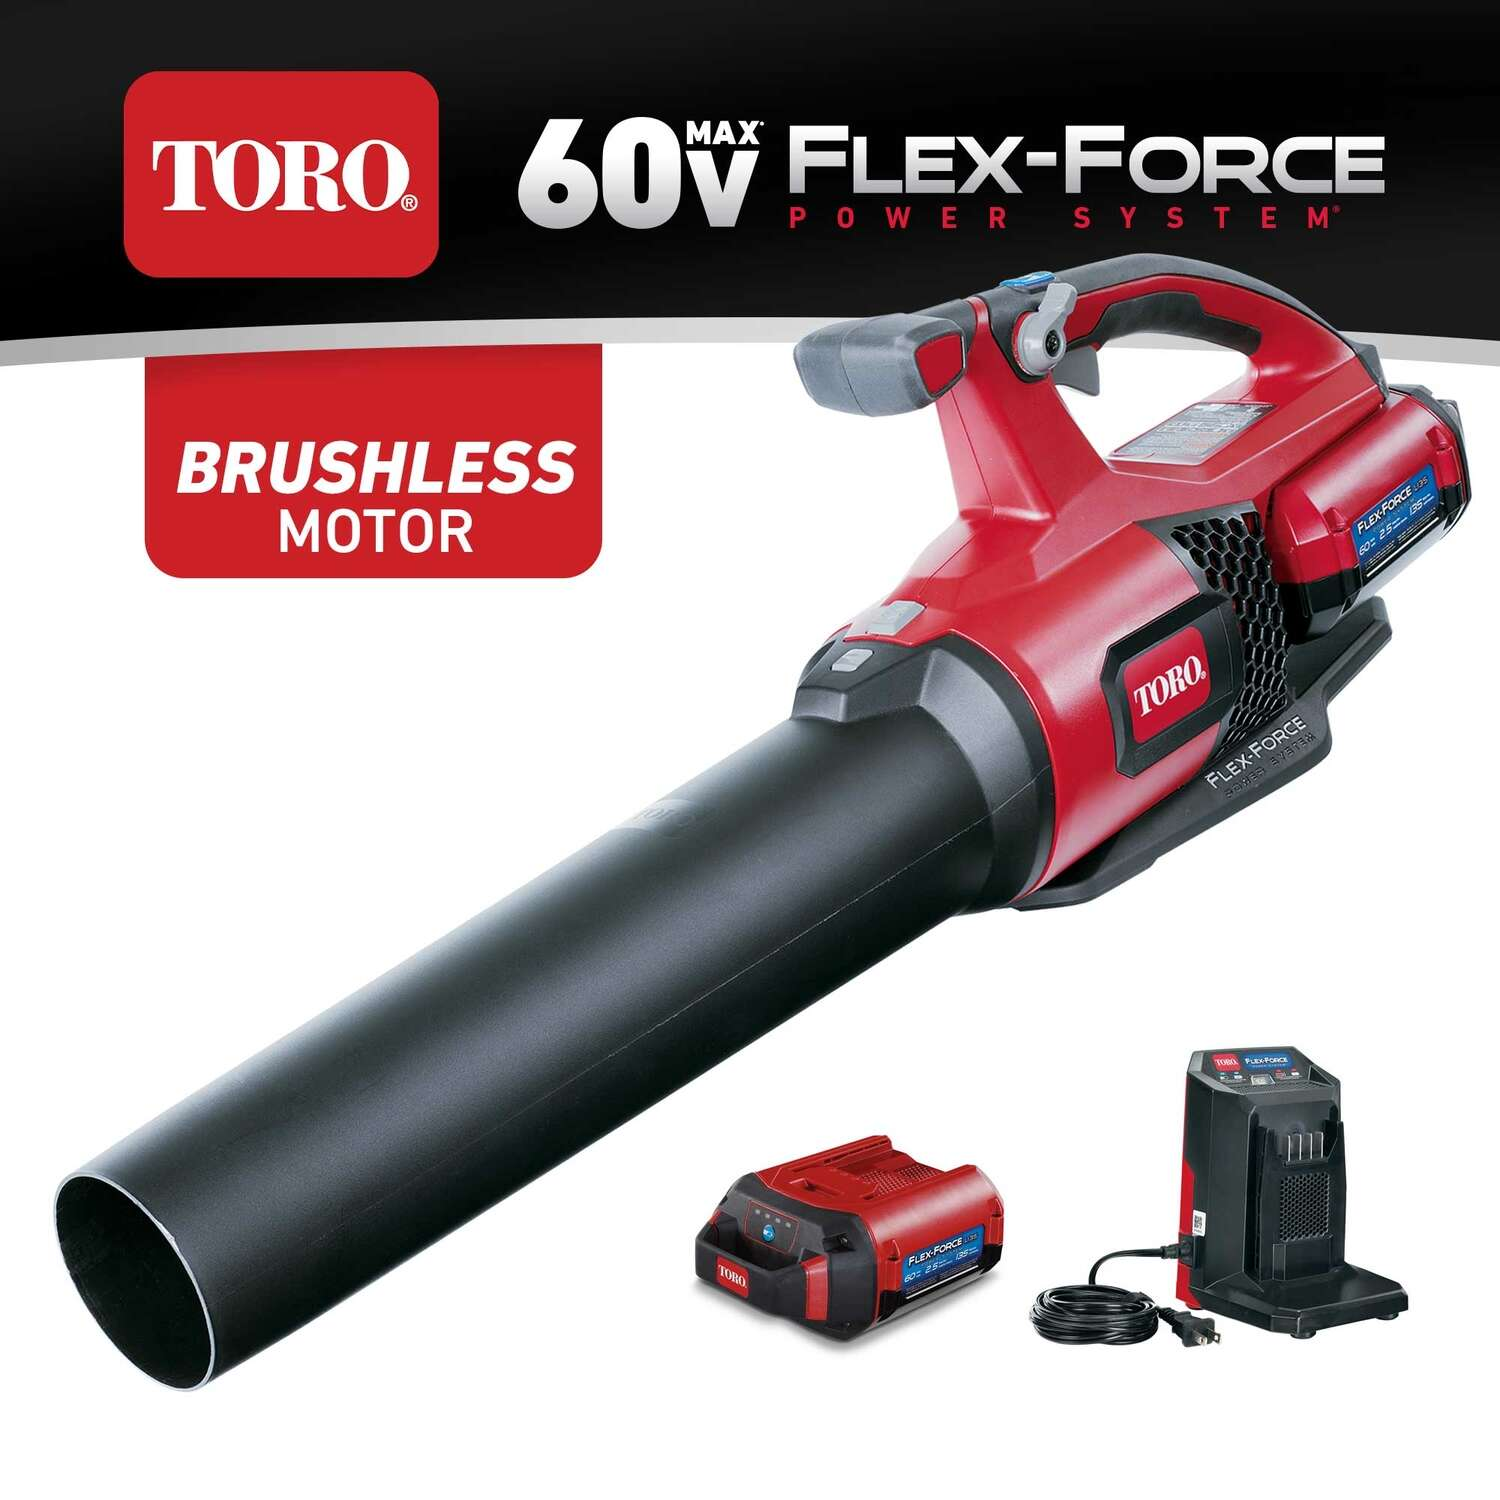 TORO 60v Flex-Force Power Systems 105 mph 550 CFM 60 volt Battery Handheld Leaf Blower Kit (Bat